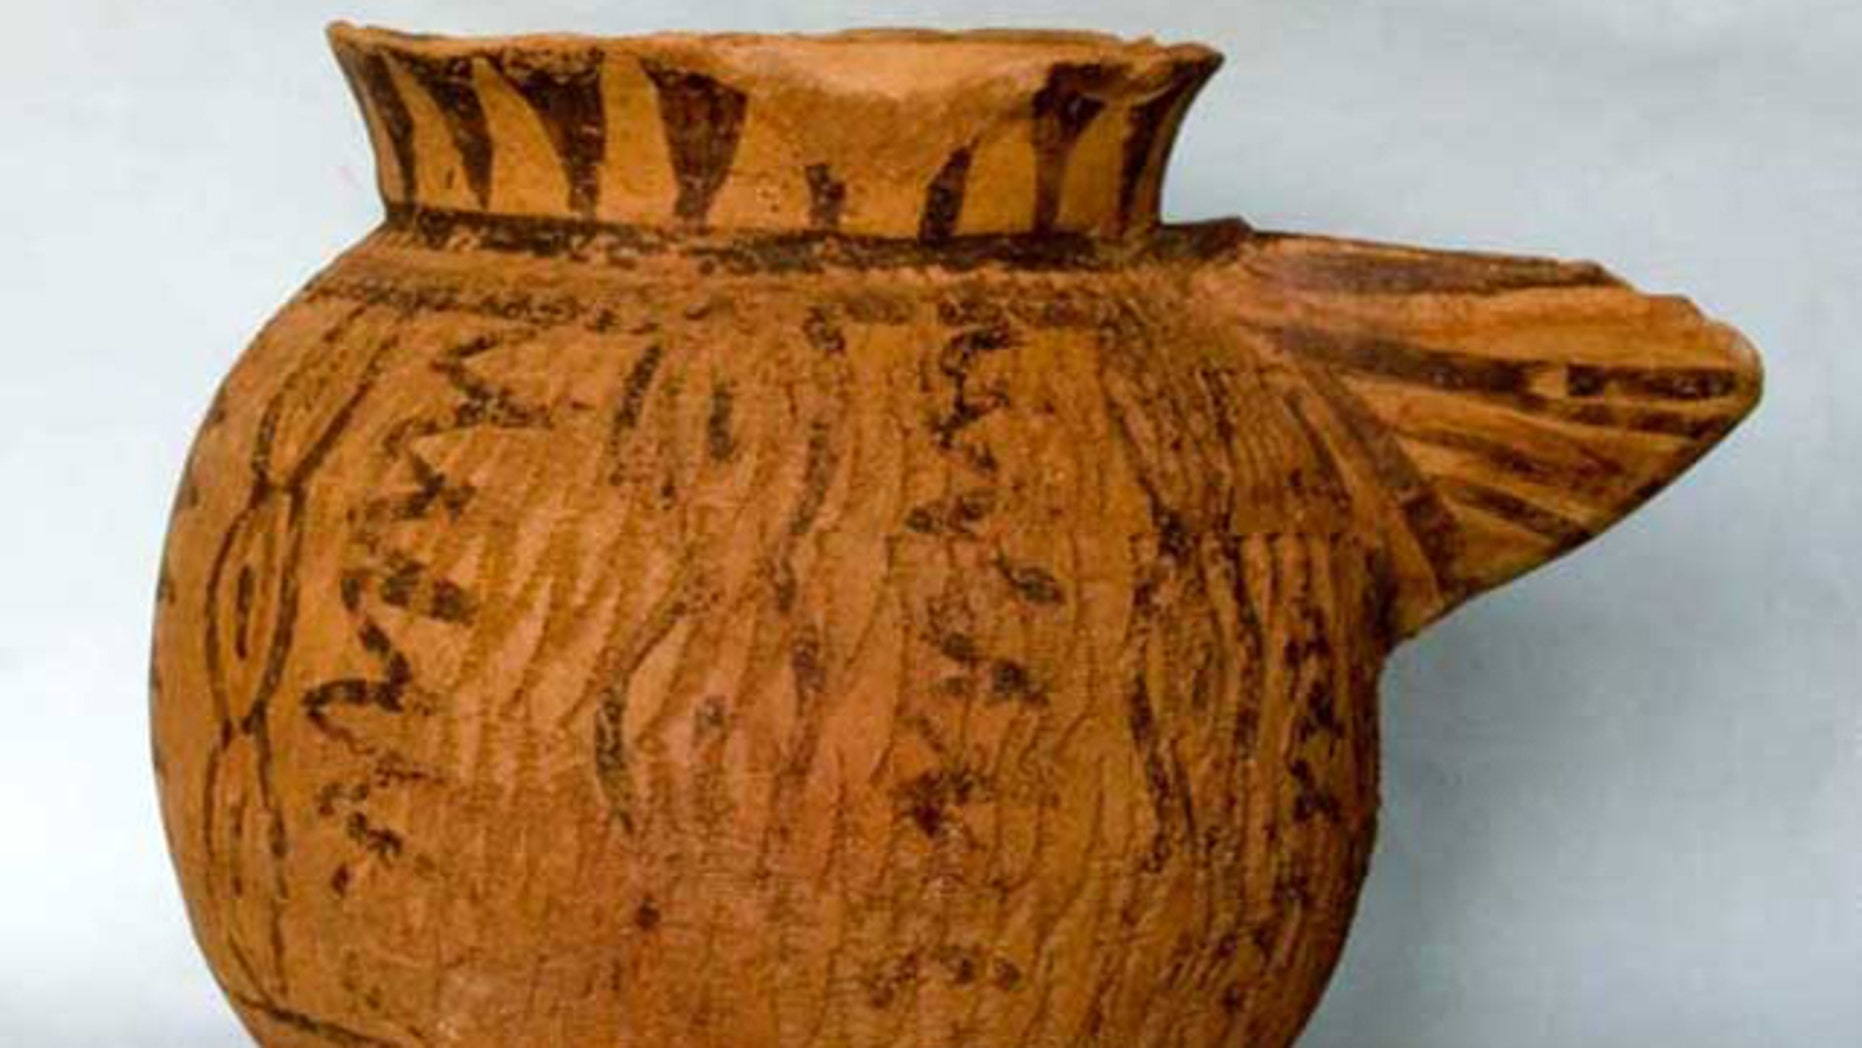 This strainer-spouted pitcher is from the Halaf period and dates from about 5400 B.C. It is painted and impressed in a pattern of connected ovals that is a common motif in the Halaf culture, and was found in the newly discovered prehistoric town of Tell Zeidan, near modern-day Syria.